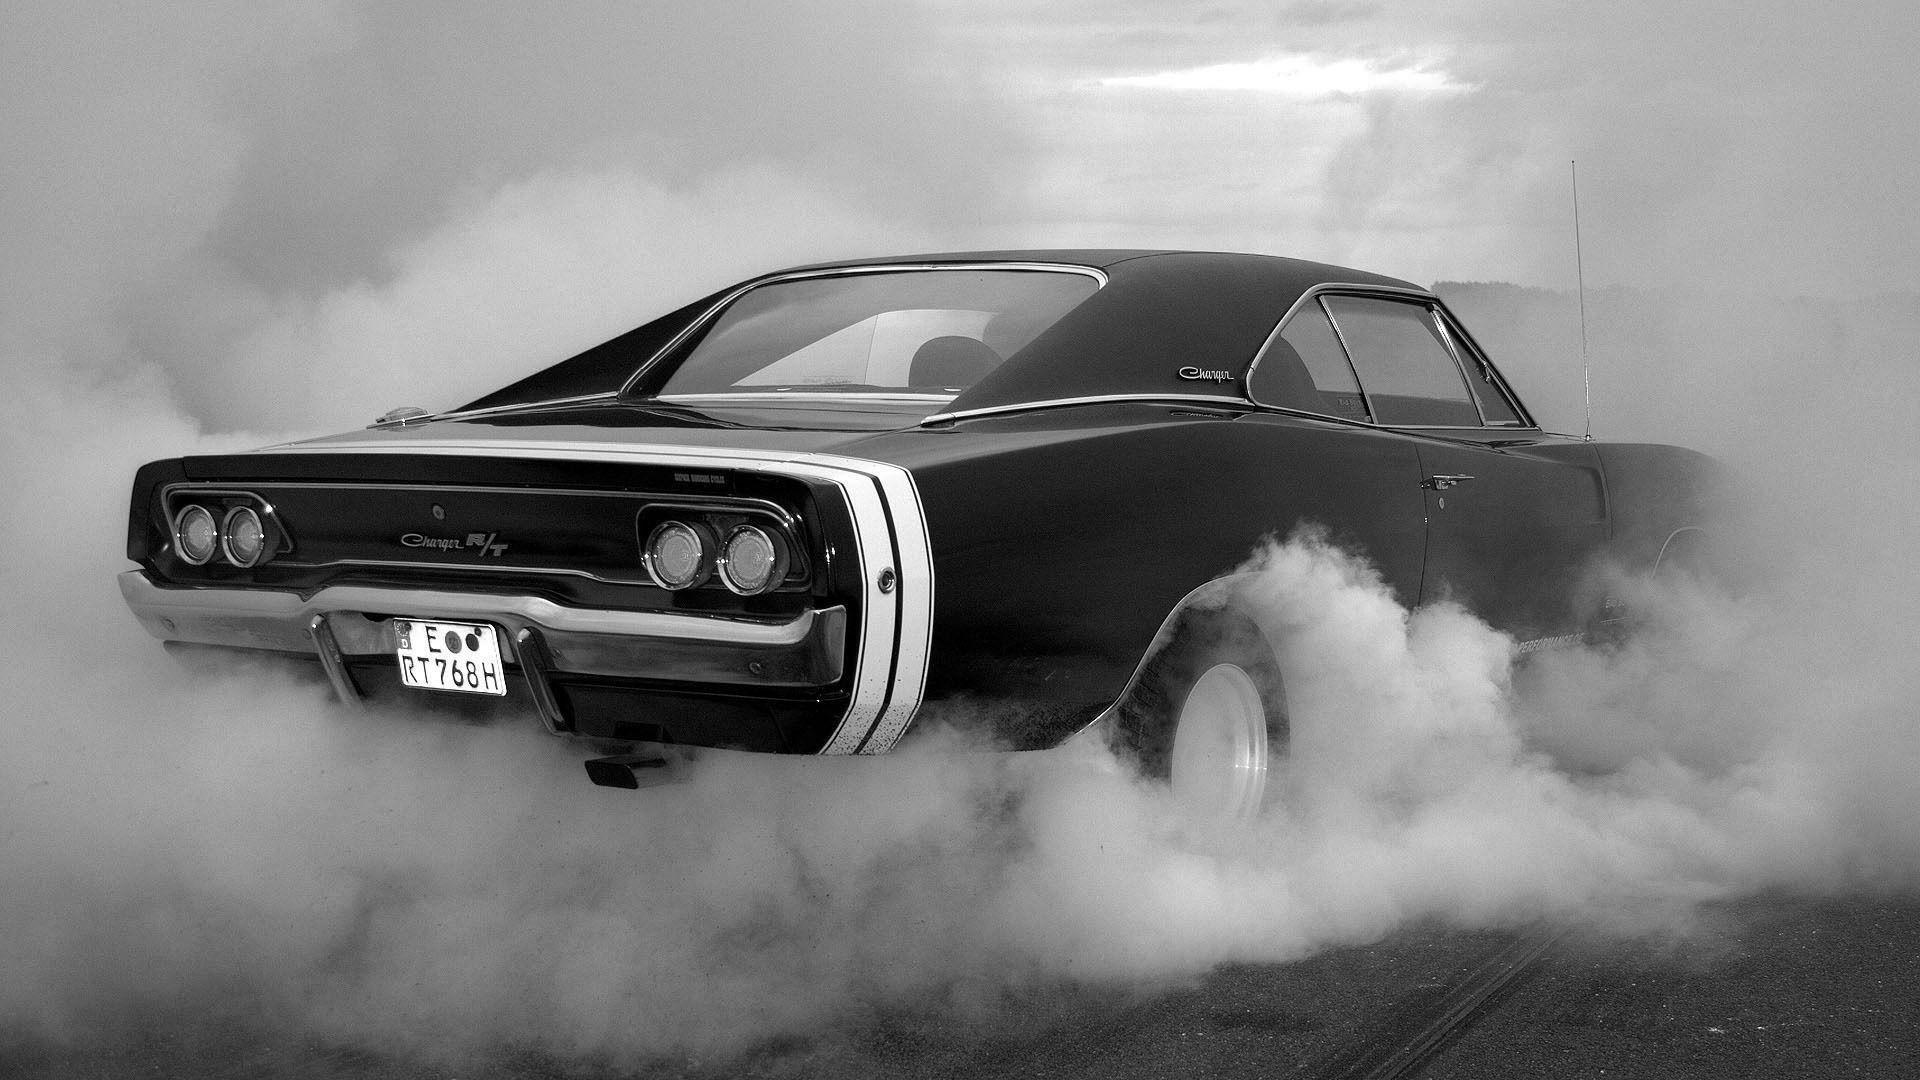 1969 charger wallpaper - photo #15